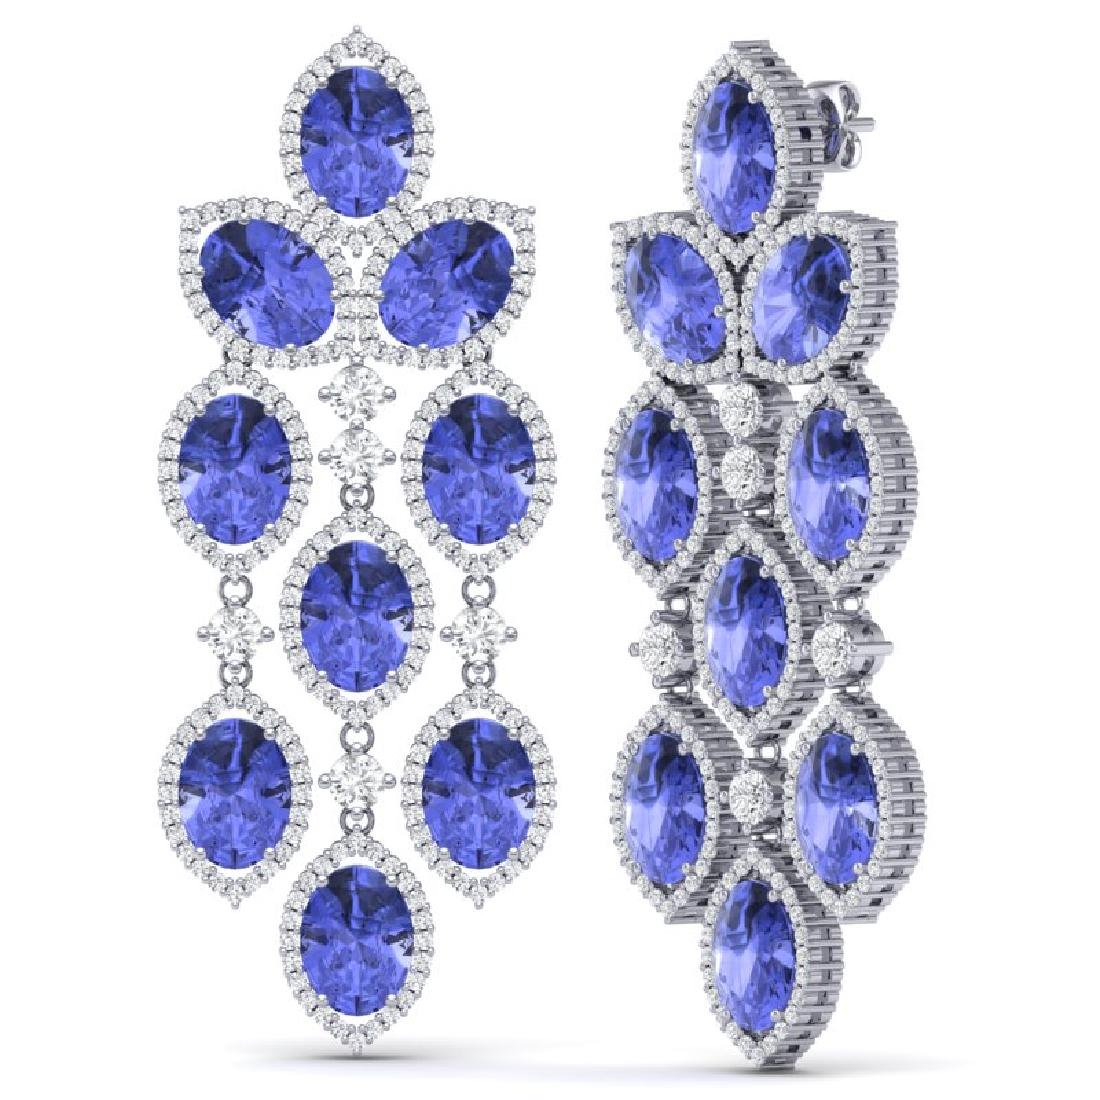 20.53 CTW Royalty Tanzanite & VS Diamond Earrings 18K - 3